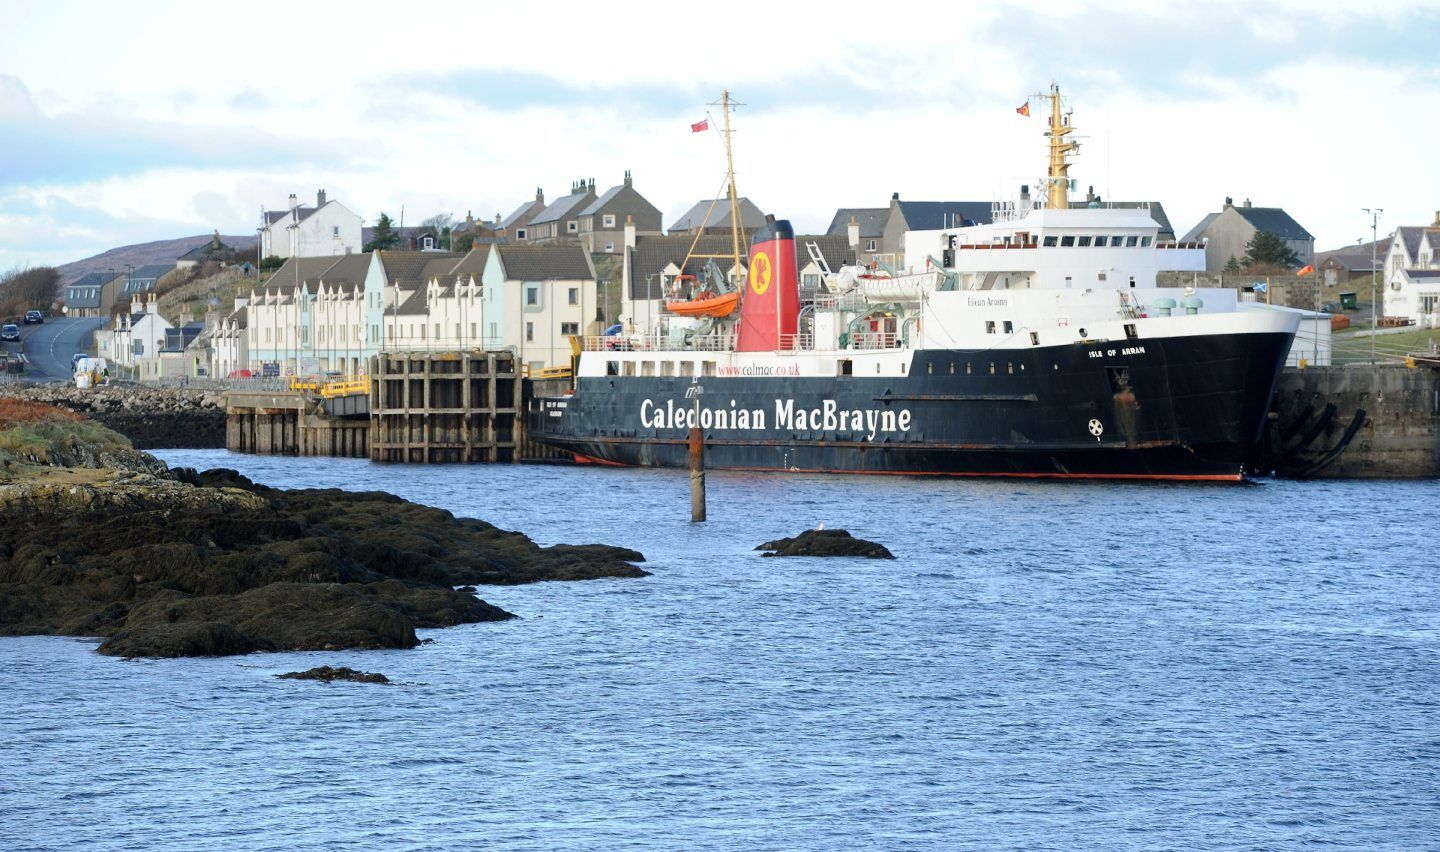 The Caledonian MacBrayne Ferry, Isle of Arran at her berth in Lochboisdale, South Uist. Picture by Sandy McCook